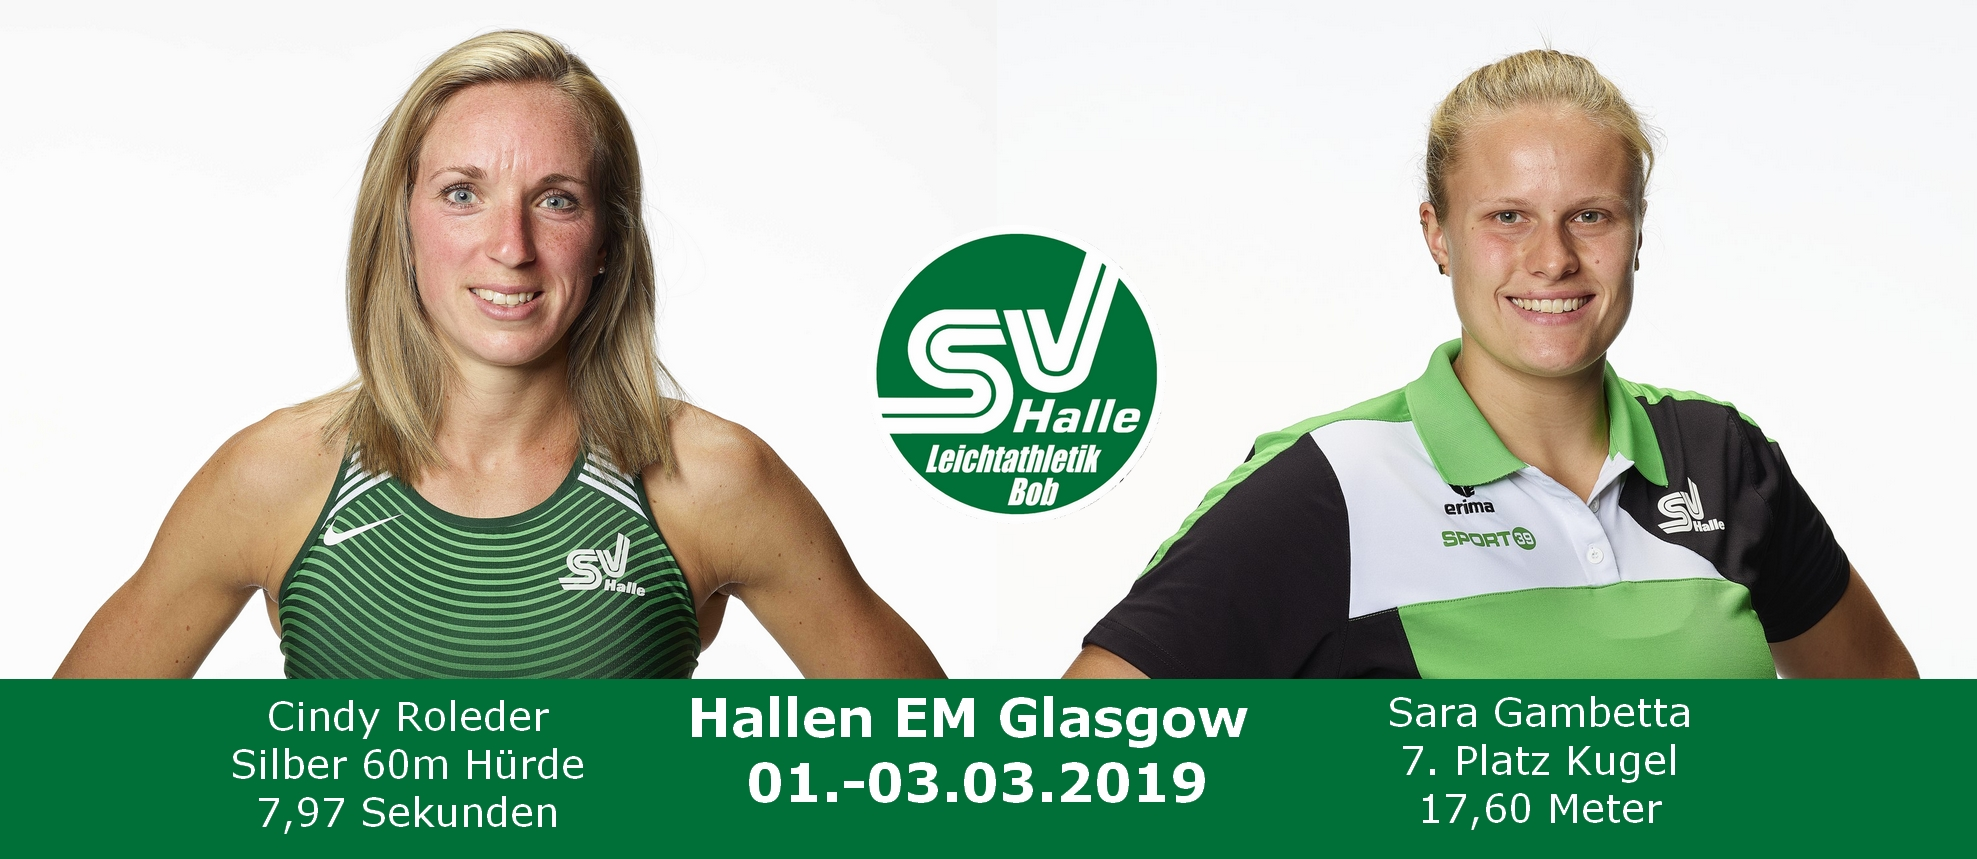 2019.03.03 - Hallen EM Glasgow Cindy und Sara Fotos Marco Warmuth